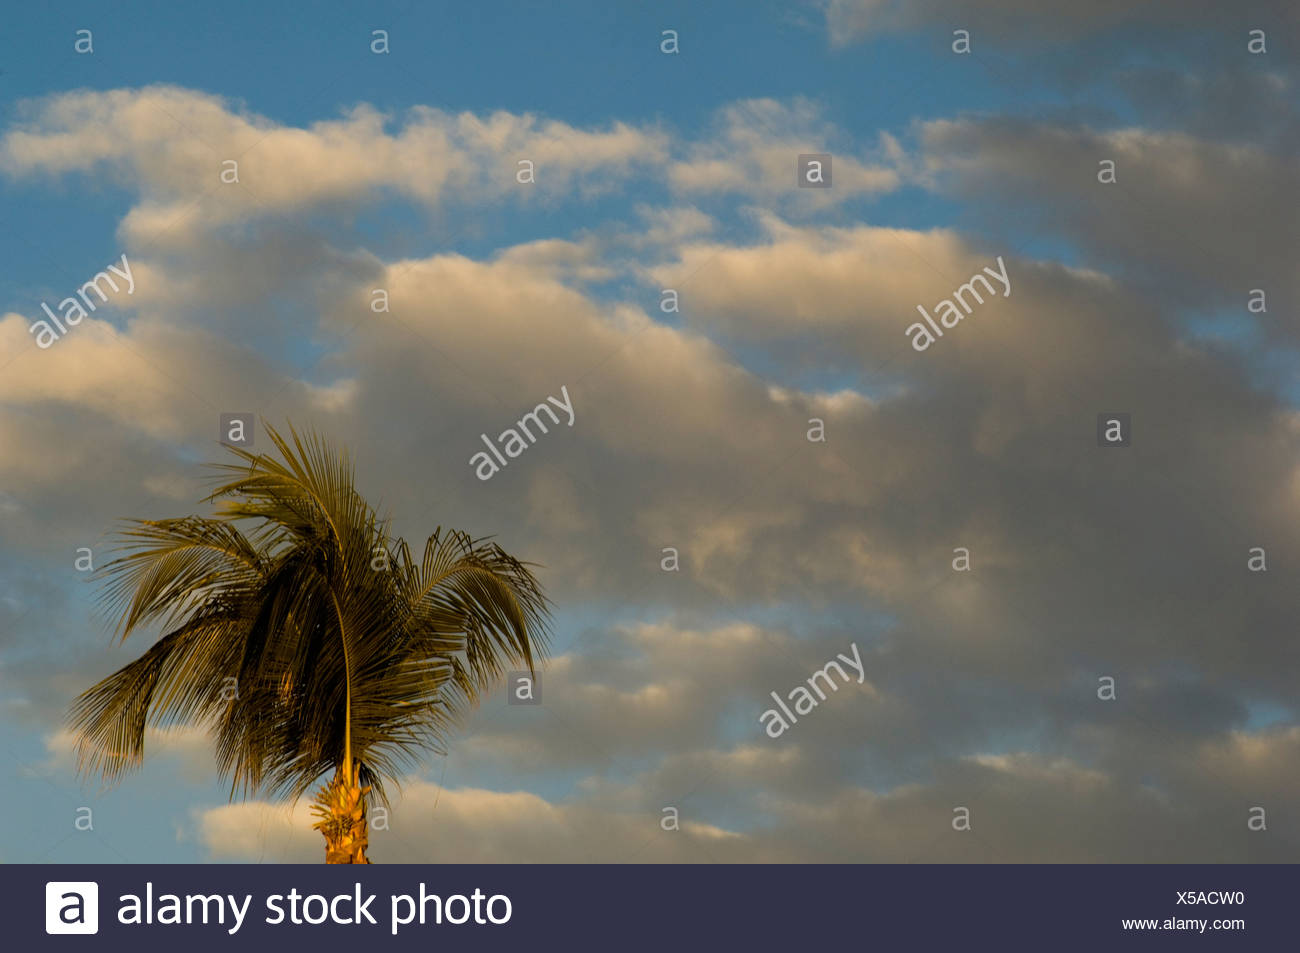 Palm tree and the partly cloudy covered, blue sky - Stock Image